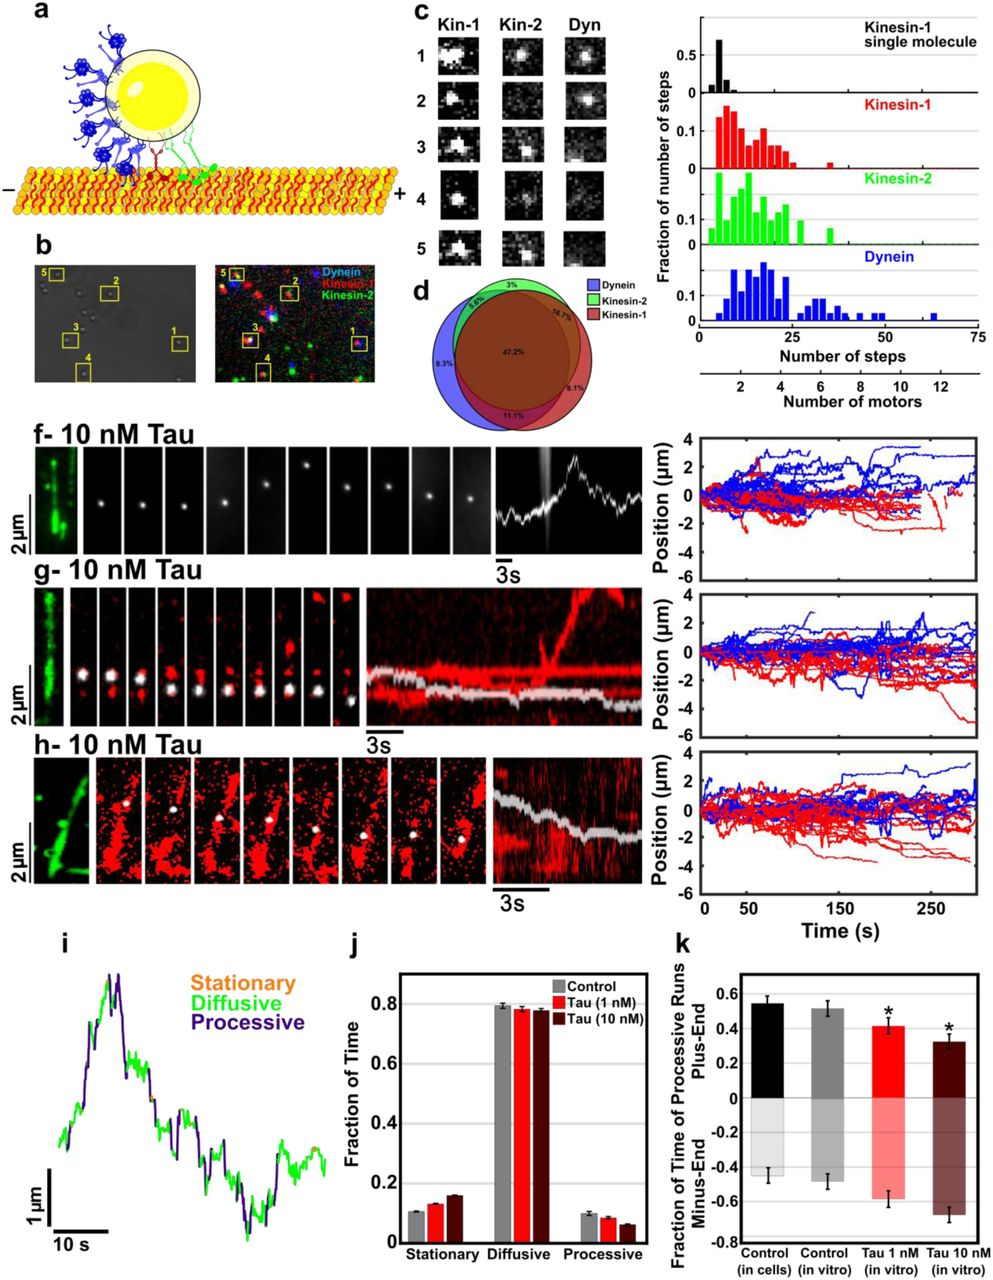 Tau directs intracellular trafficking by regulating the